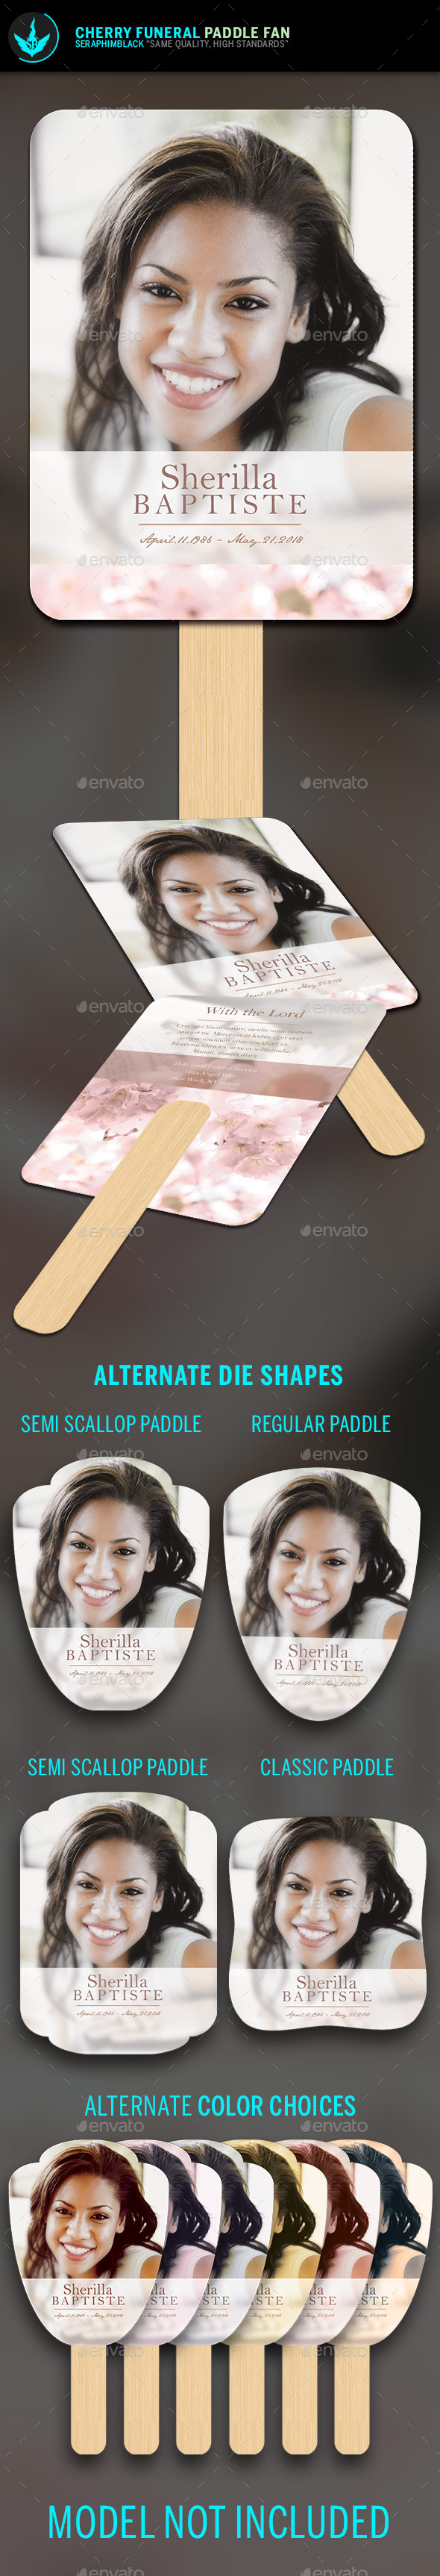 Cherry Funeral Paddle Fan Template - Miscellaneous Print Templates